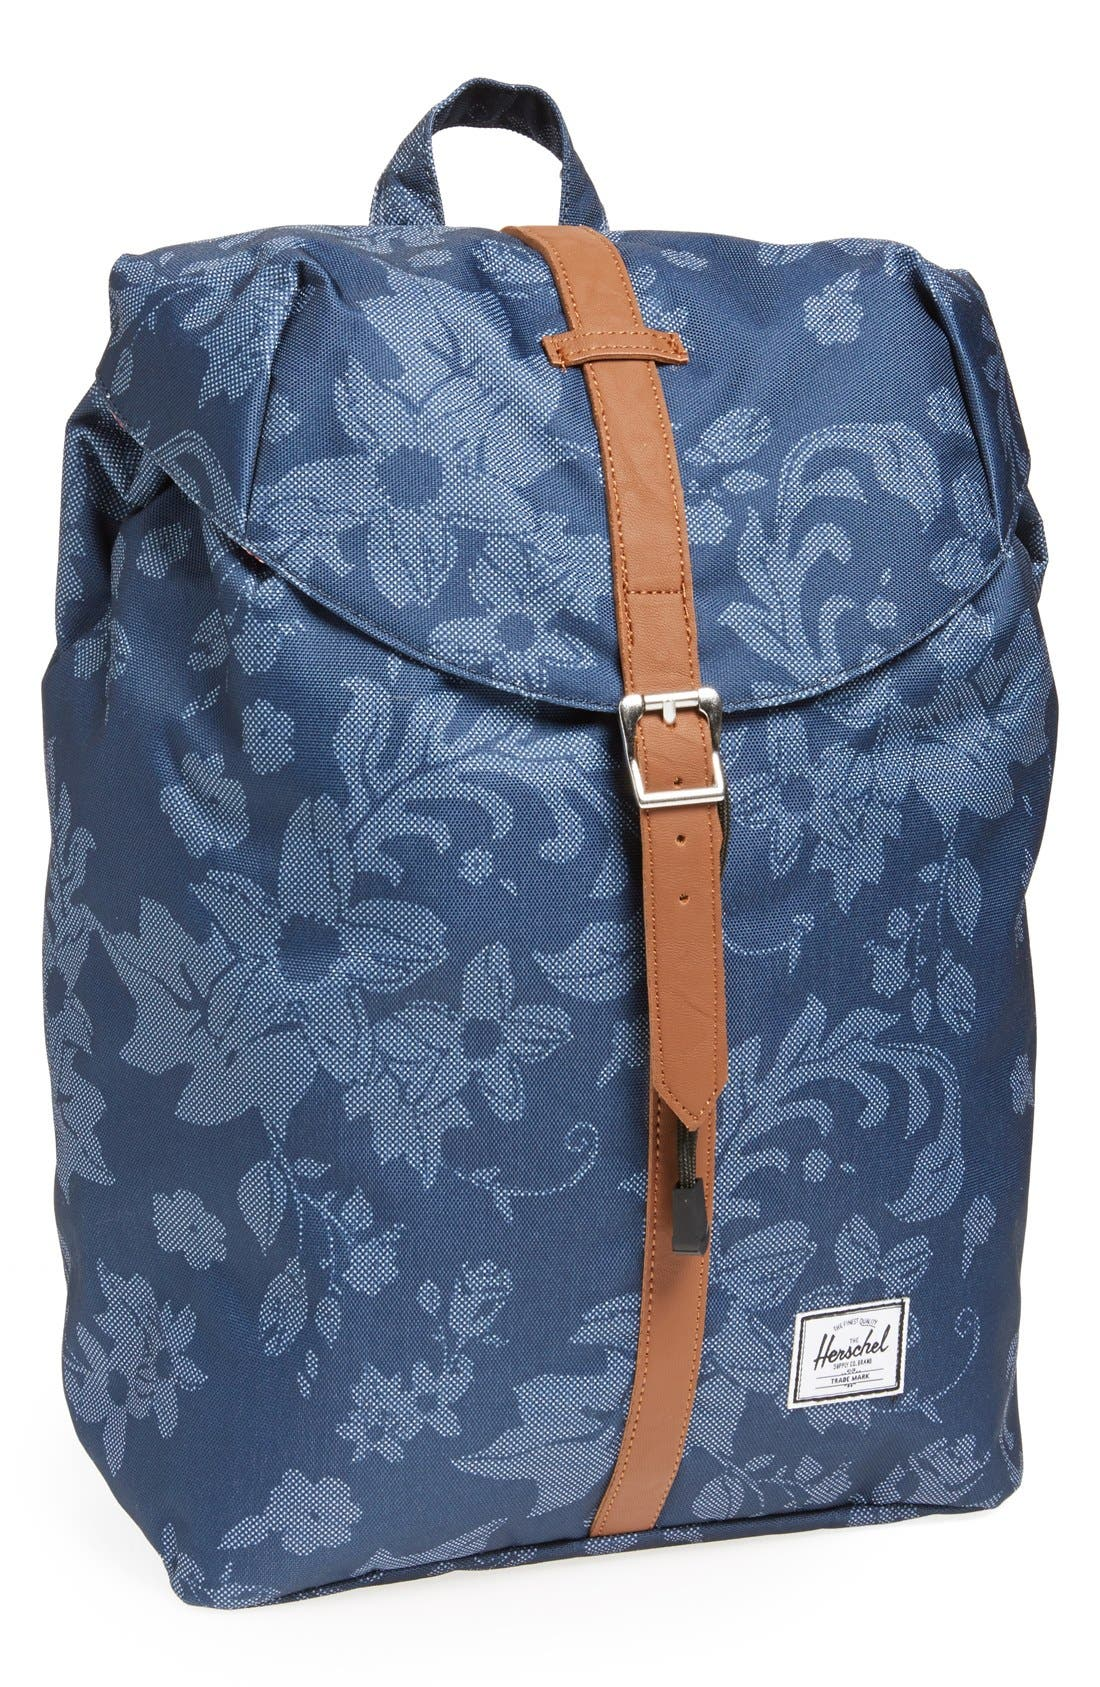 Alternate Image 1 Selected - Herschel Supply Co. 'Post- Mid Volume' Backpack